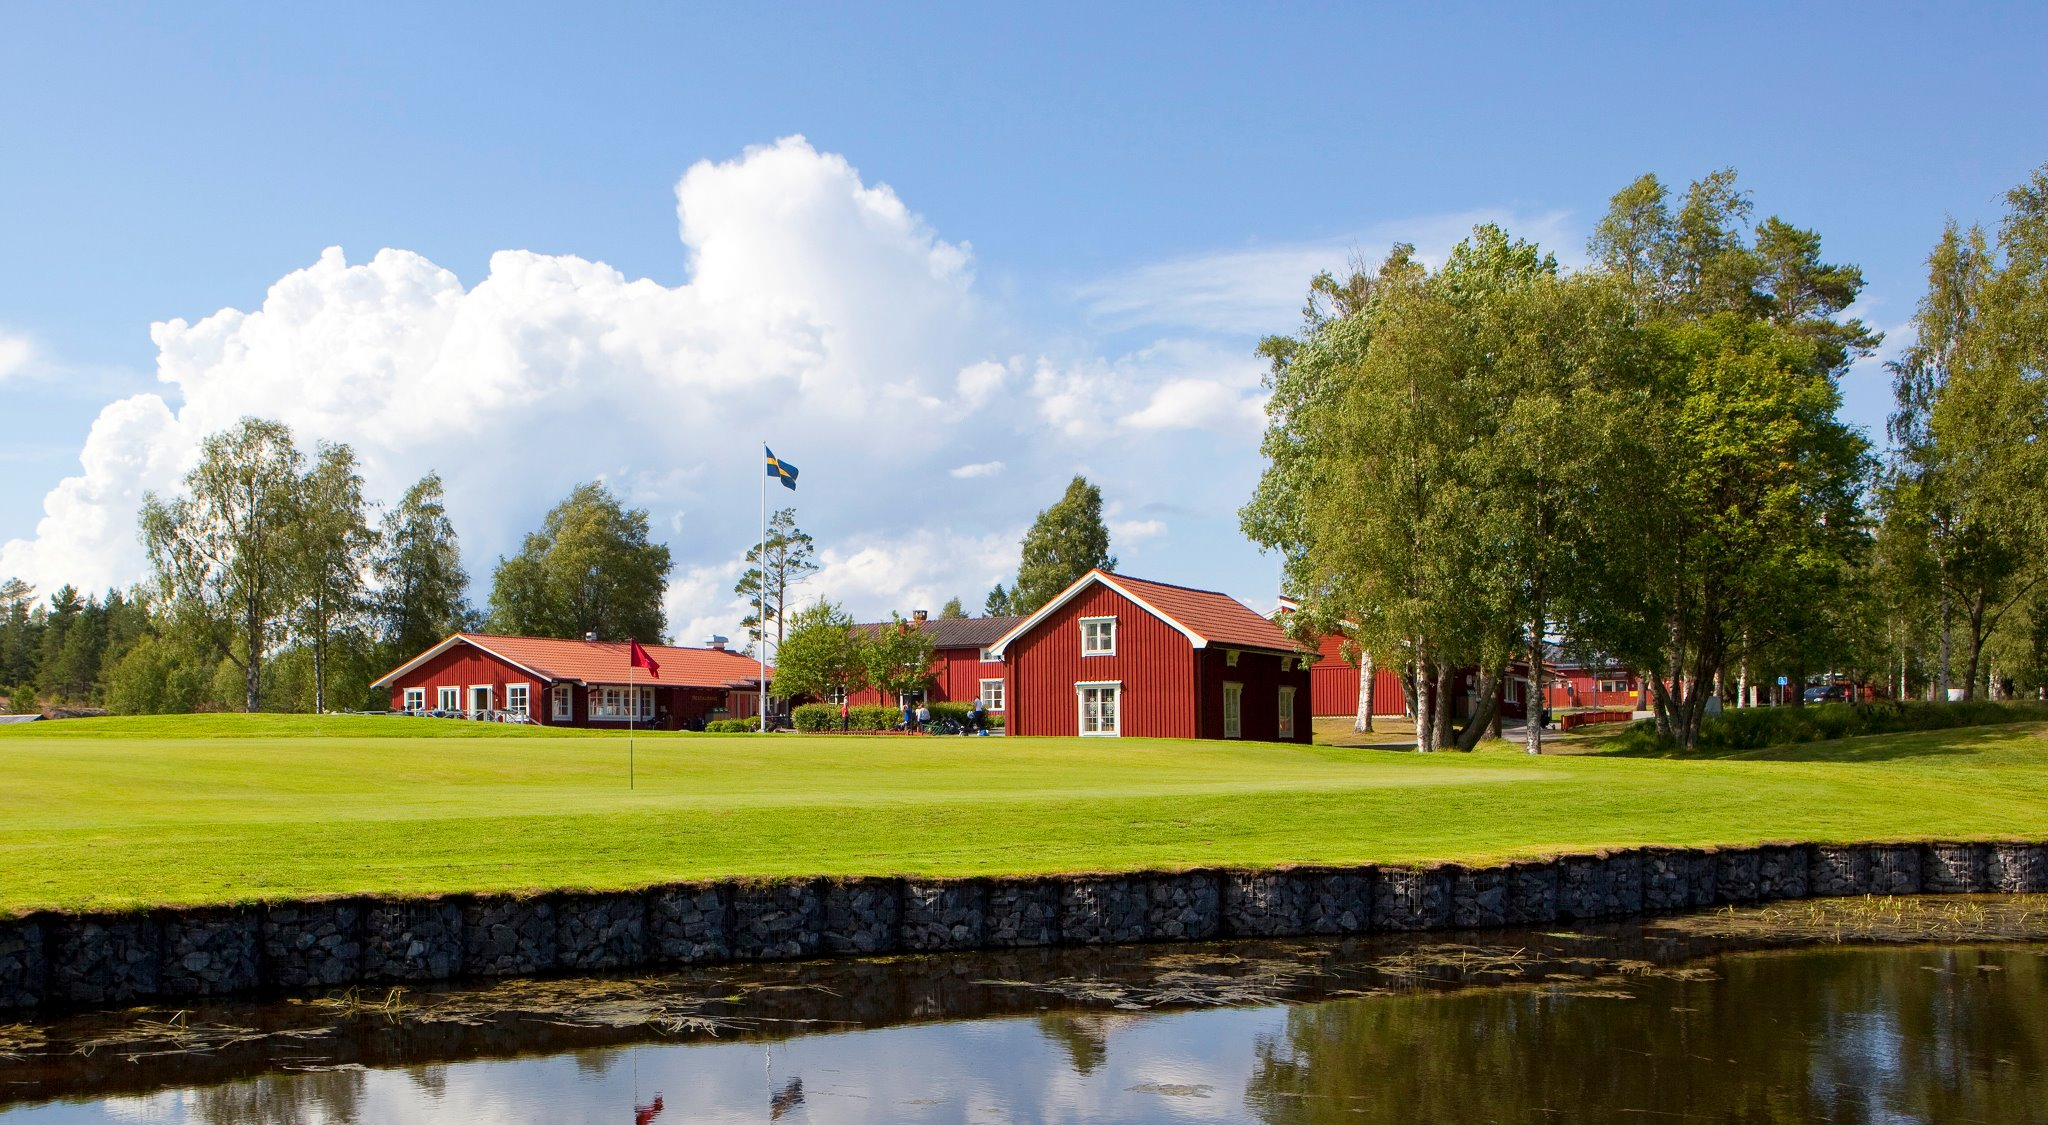 Overview of golf course named Umea Golfklubb